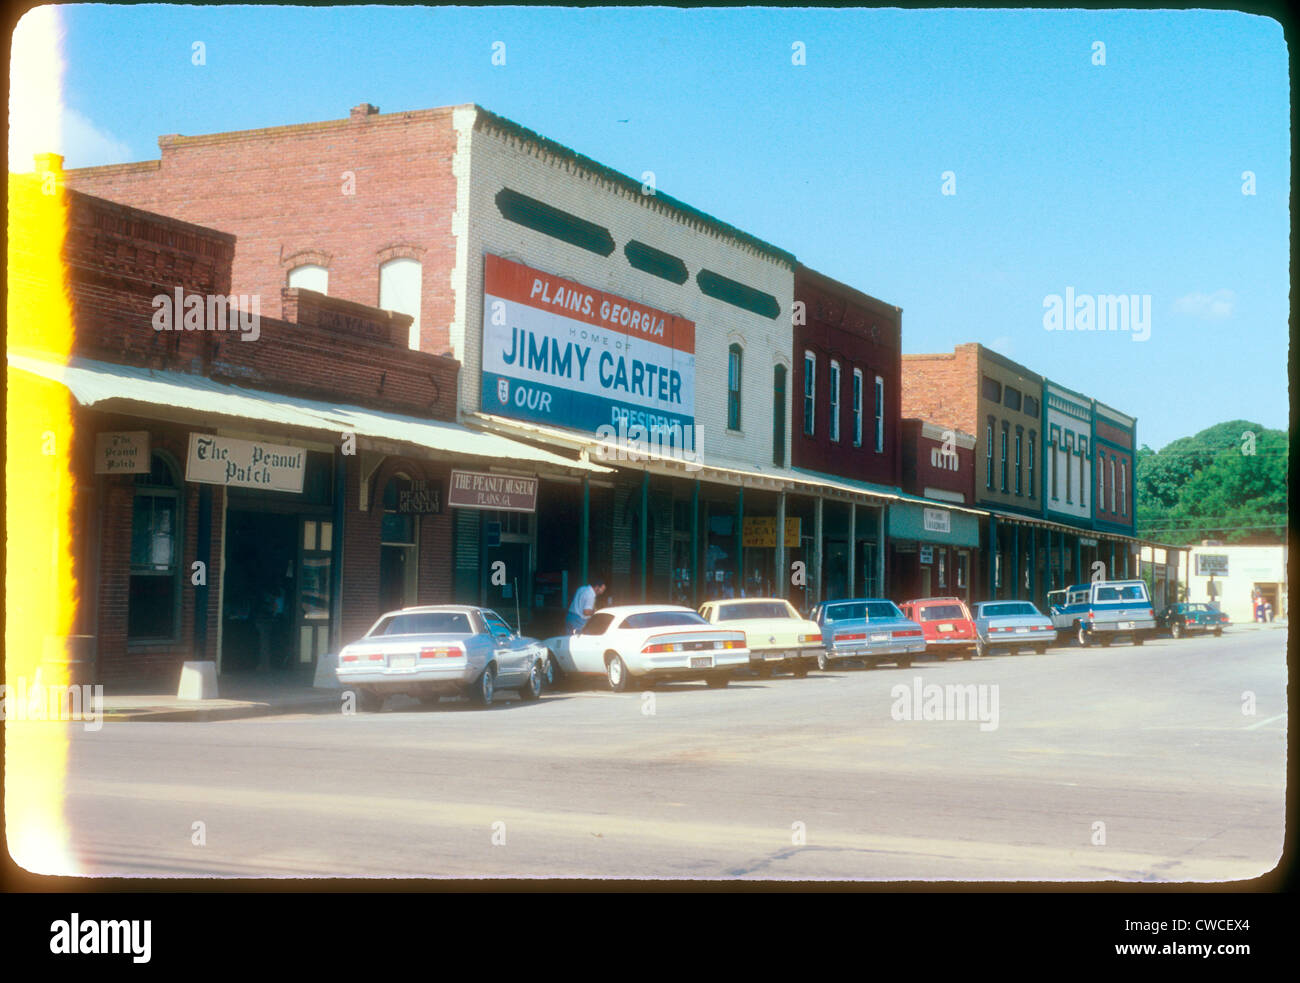 Downtown Plains Georgia Jimmy Carter home of our president 1979 sign city scape American president Election year - Stock Image